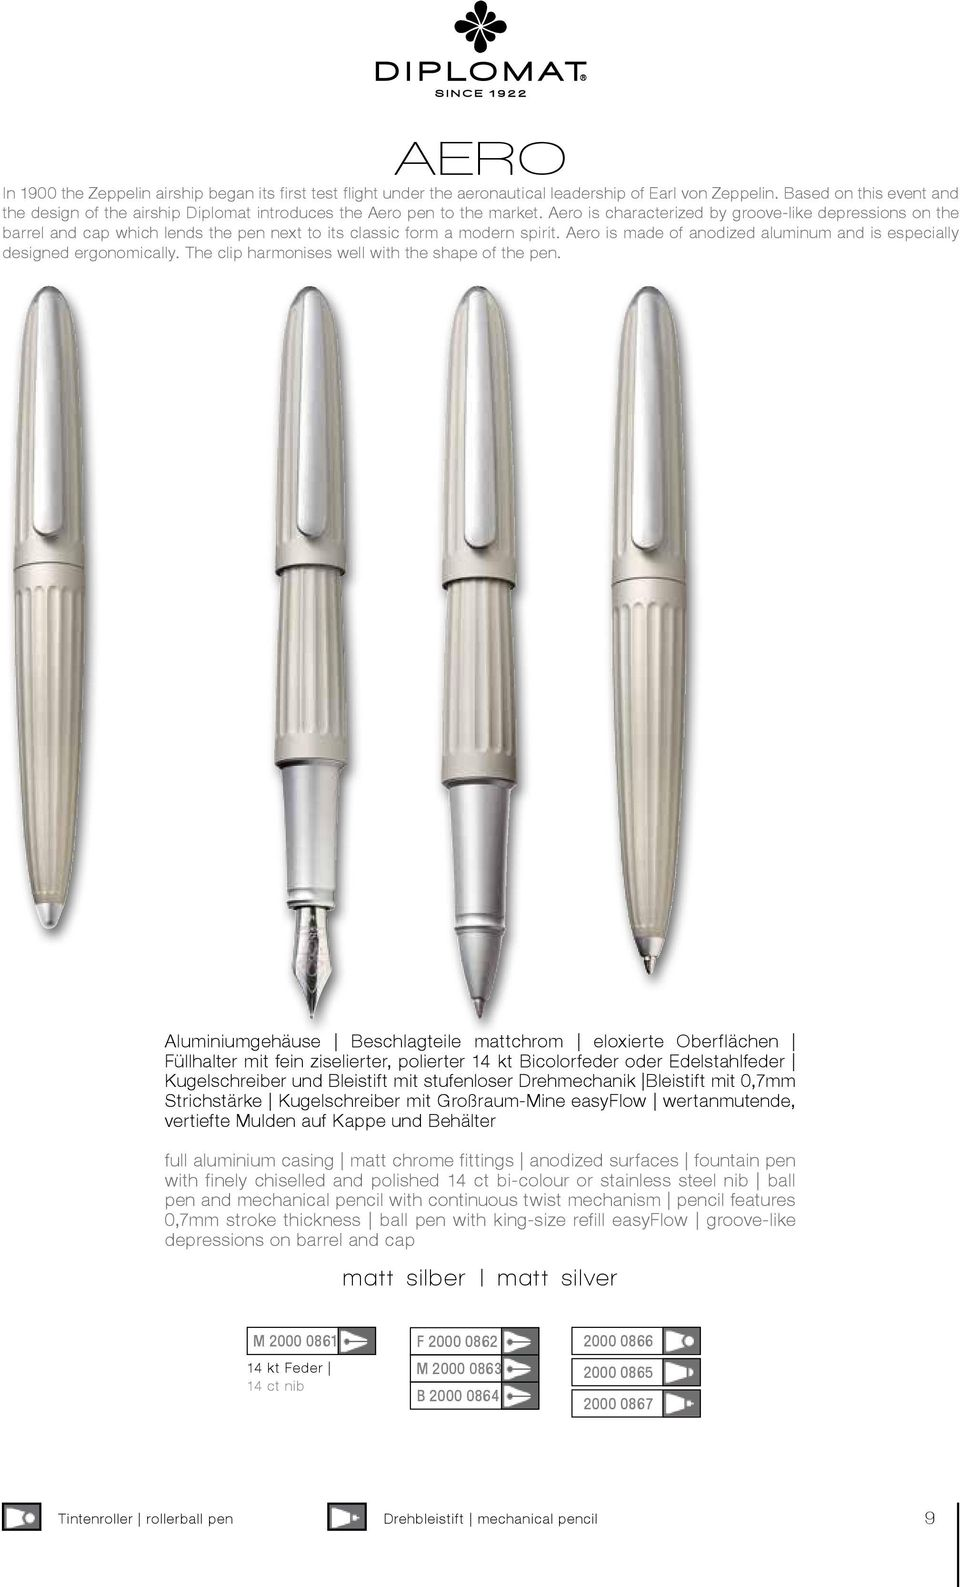 Aero is characterized by groove-like depressions on the barrel and cap which lends the pen next to its classic form a modern spirit.